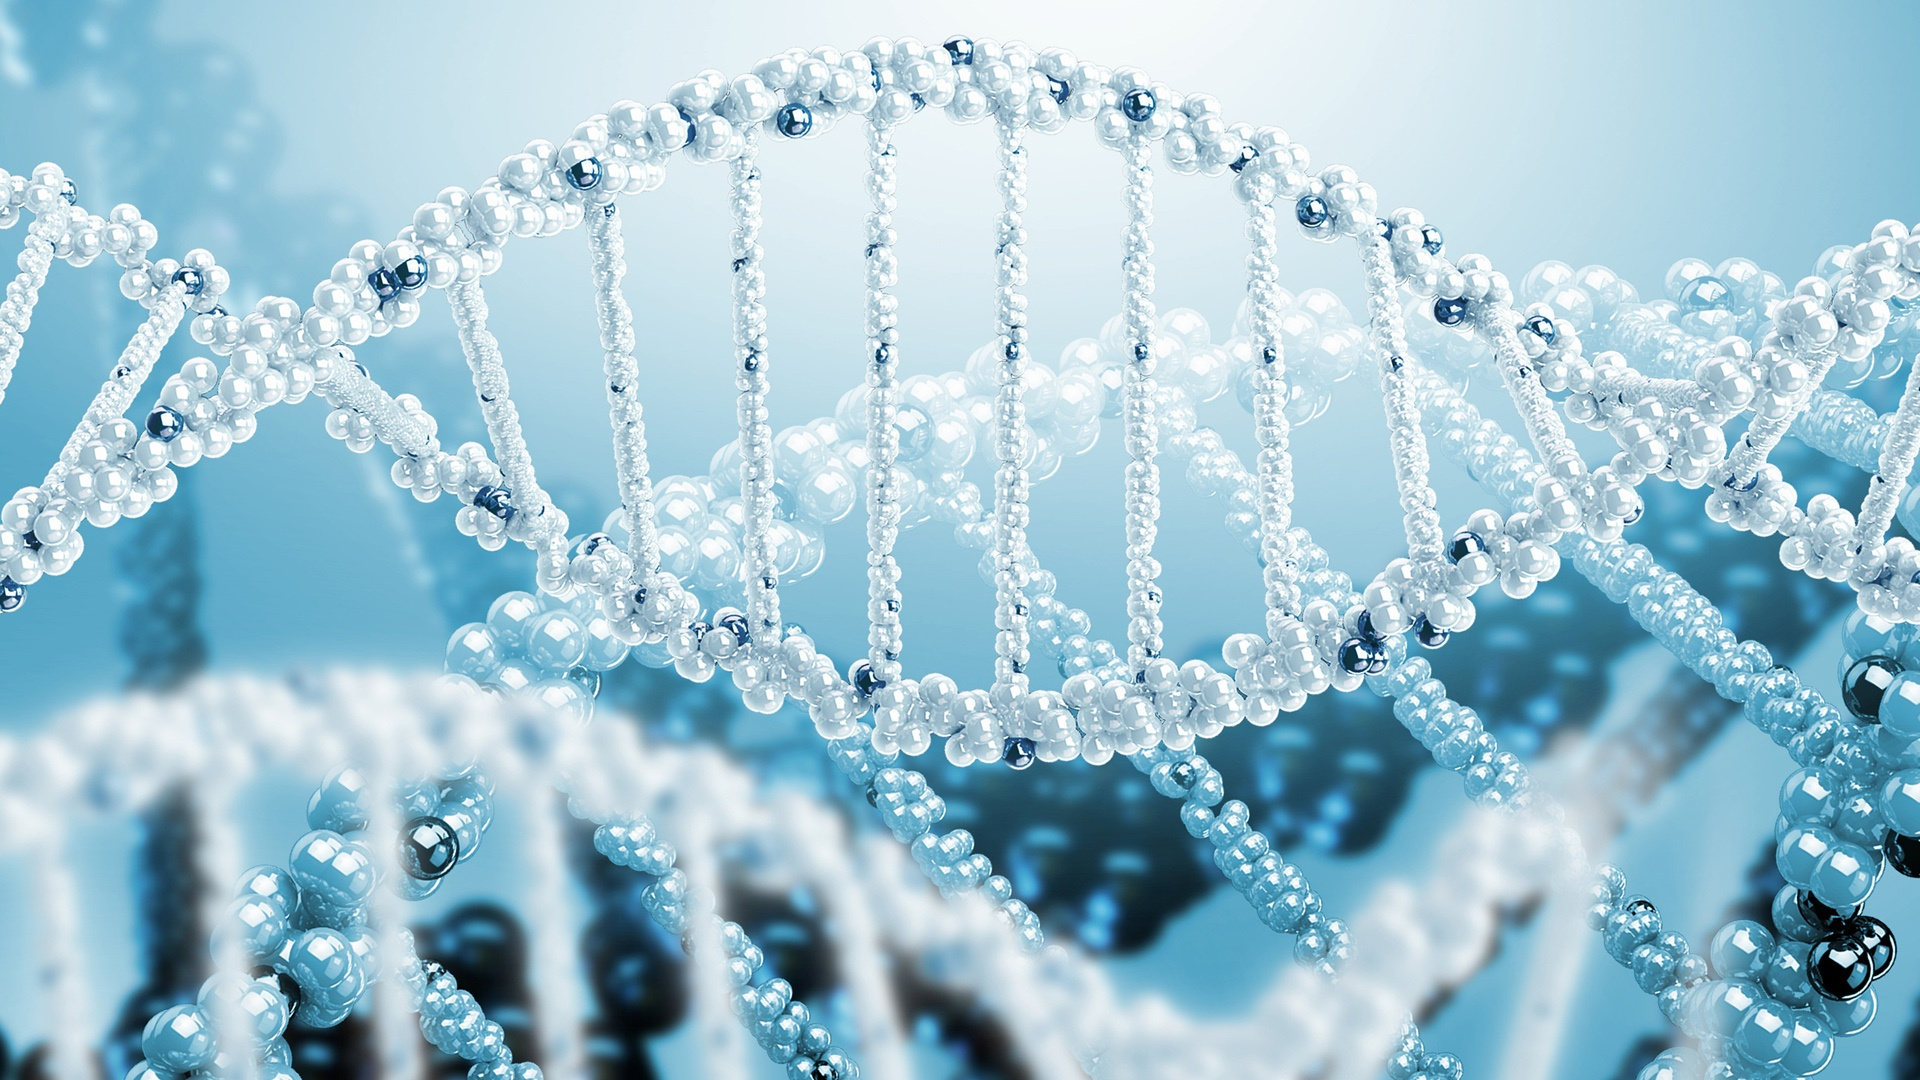 DNA HD Wallpaper   HD Images New 1920x1080